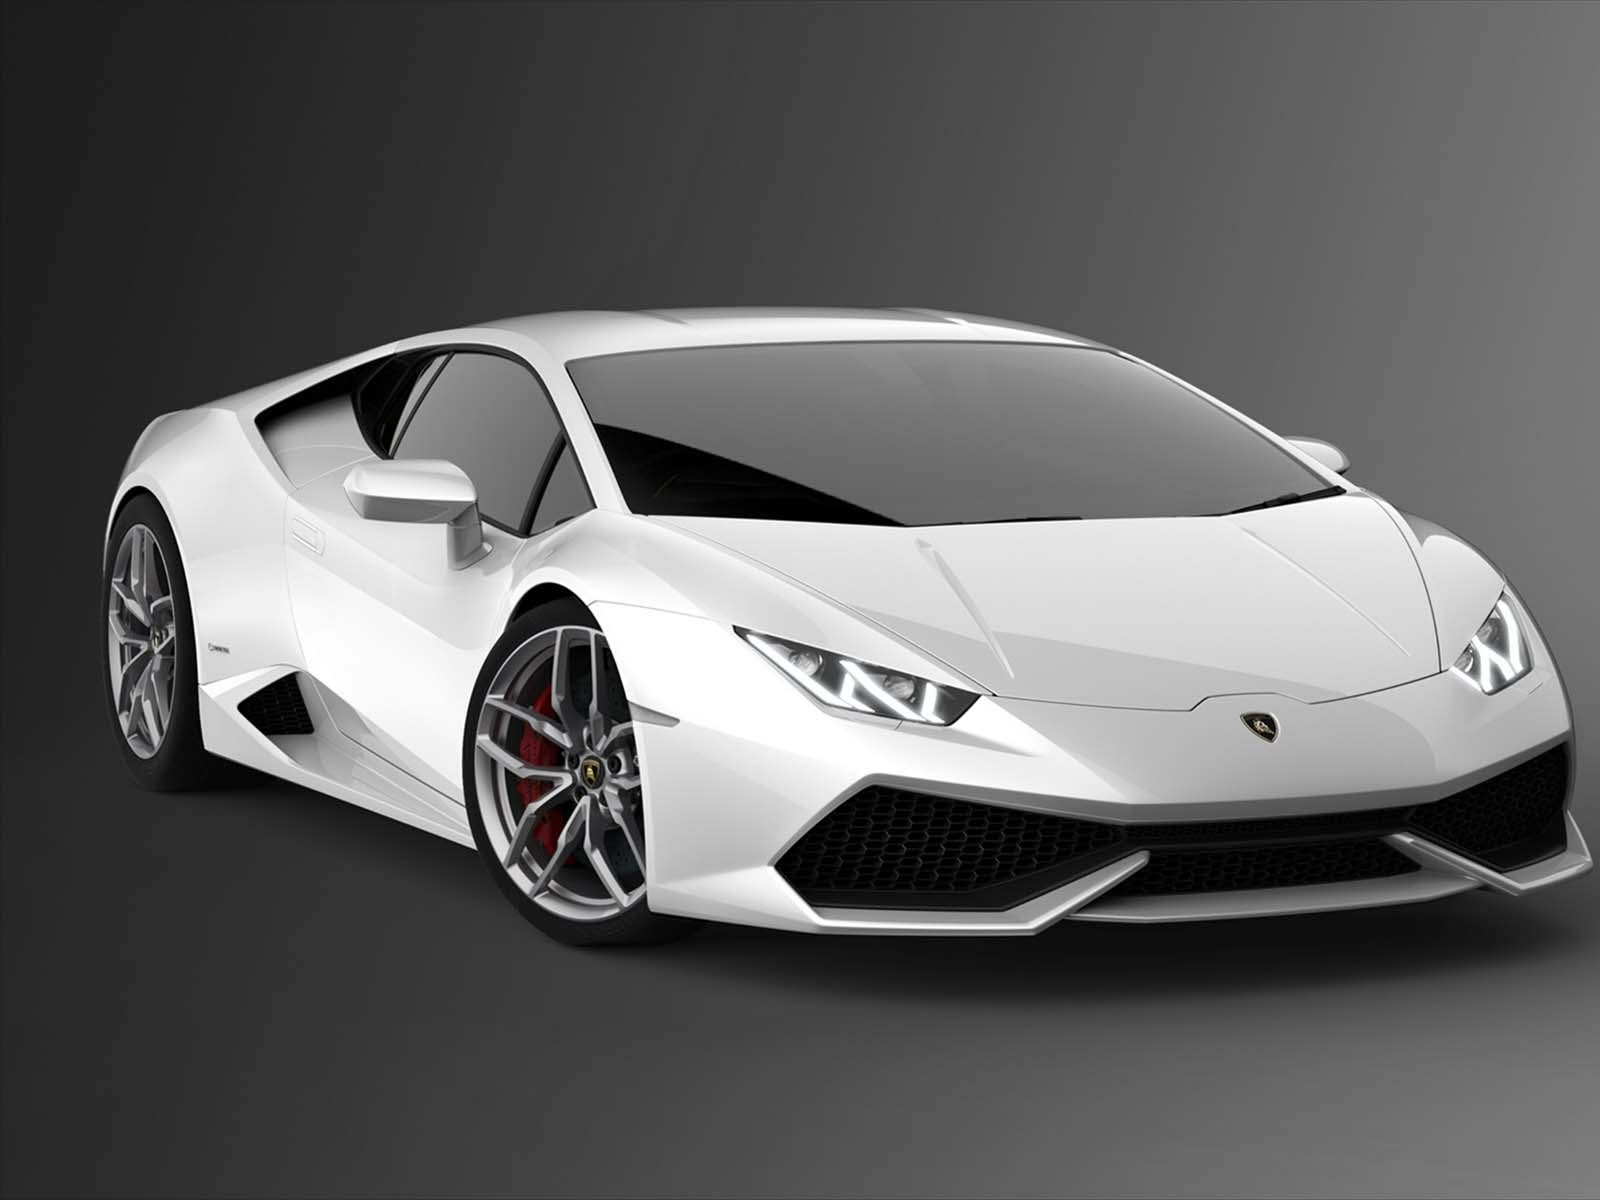 lamborghini huracan lp610 4 hd wallpapers stills images techgangs. Black Bedroom Furniture Sets. Home Design Ideas